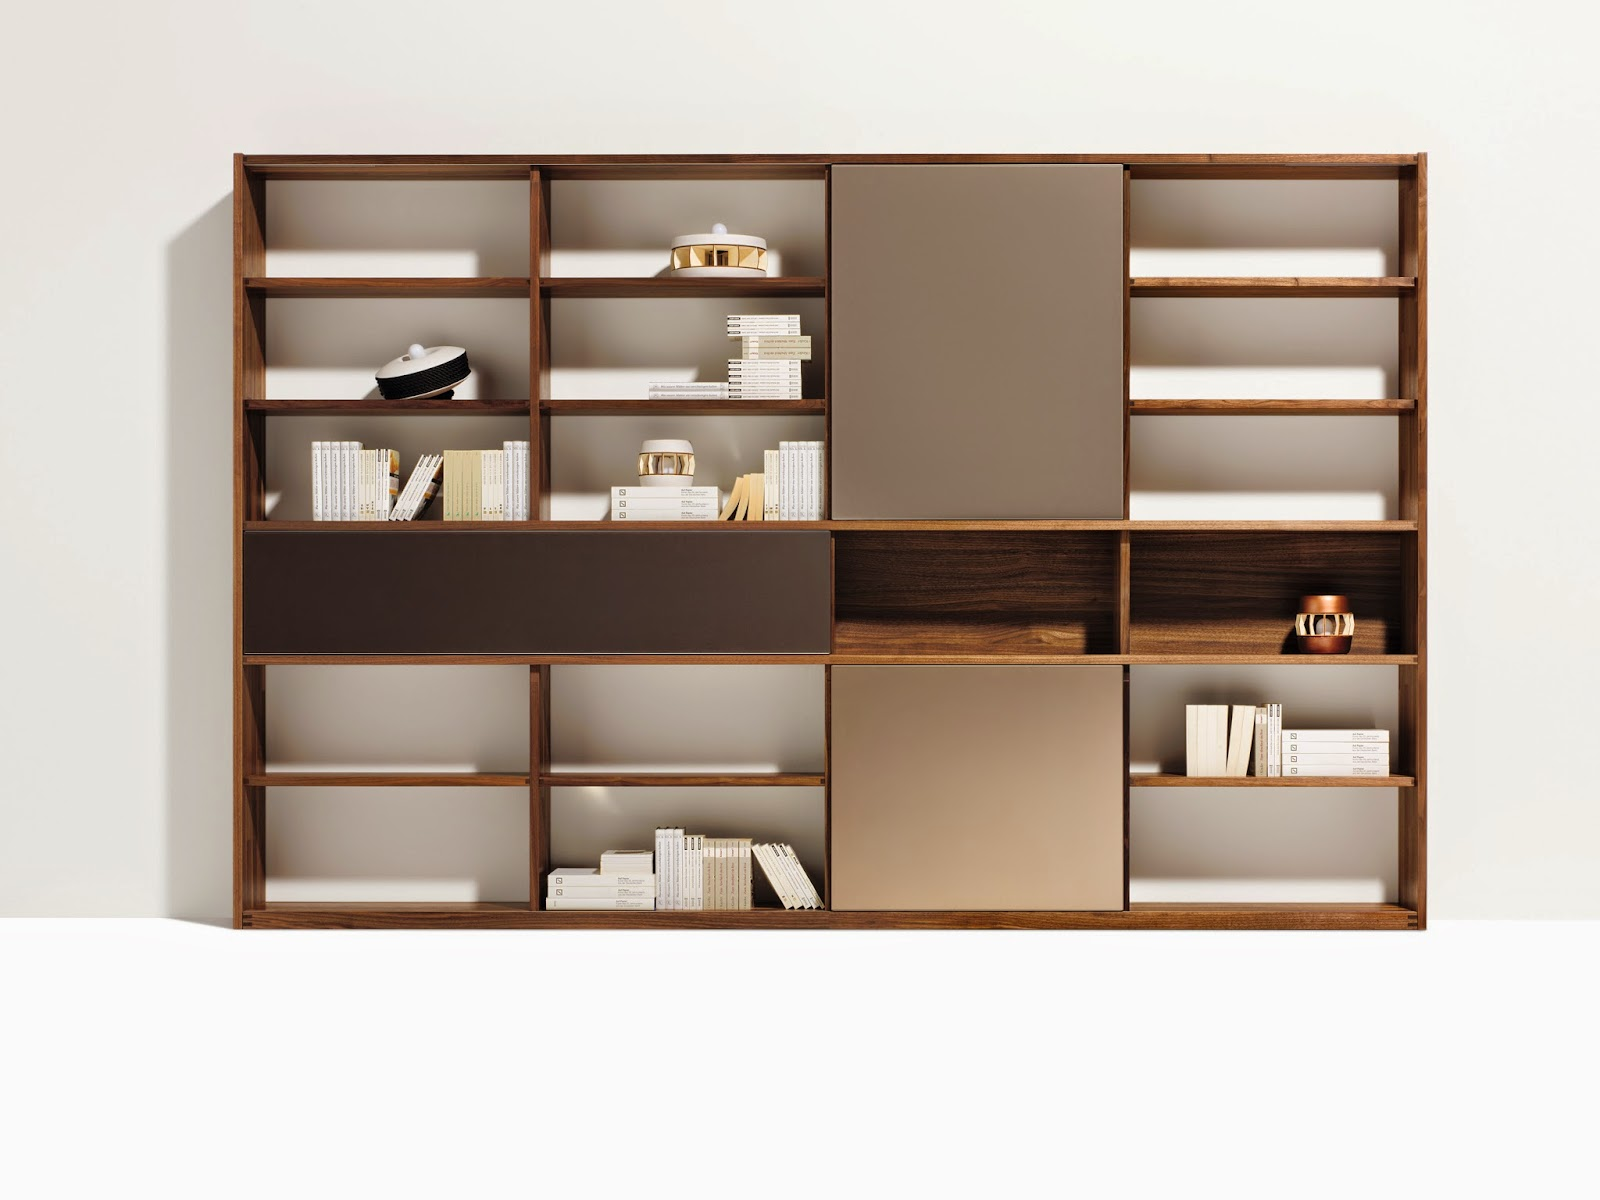 cubus boekenkasten noordkaap meubelen. Black Bedroom Furniture Sets. Home Design Ideas